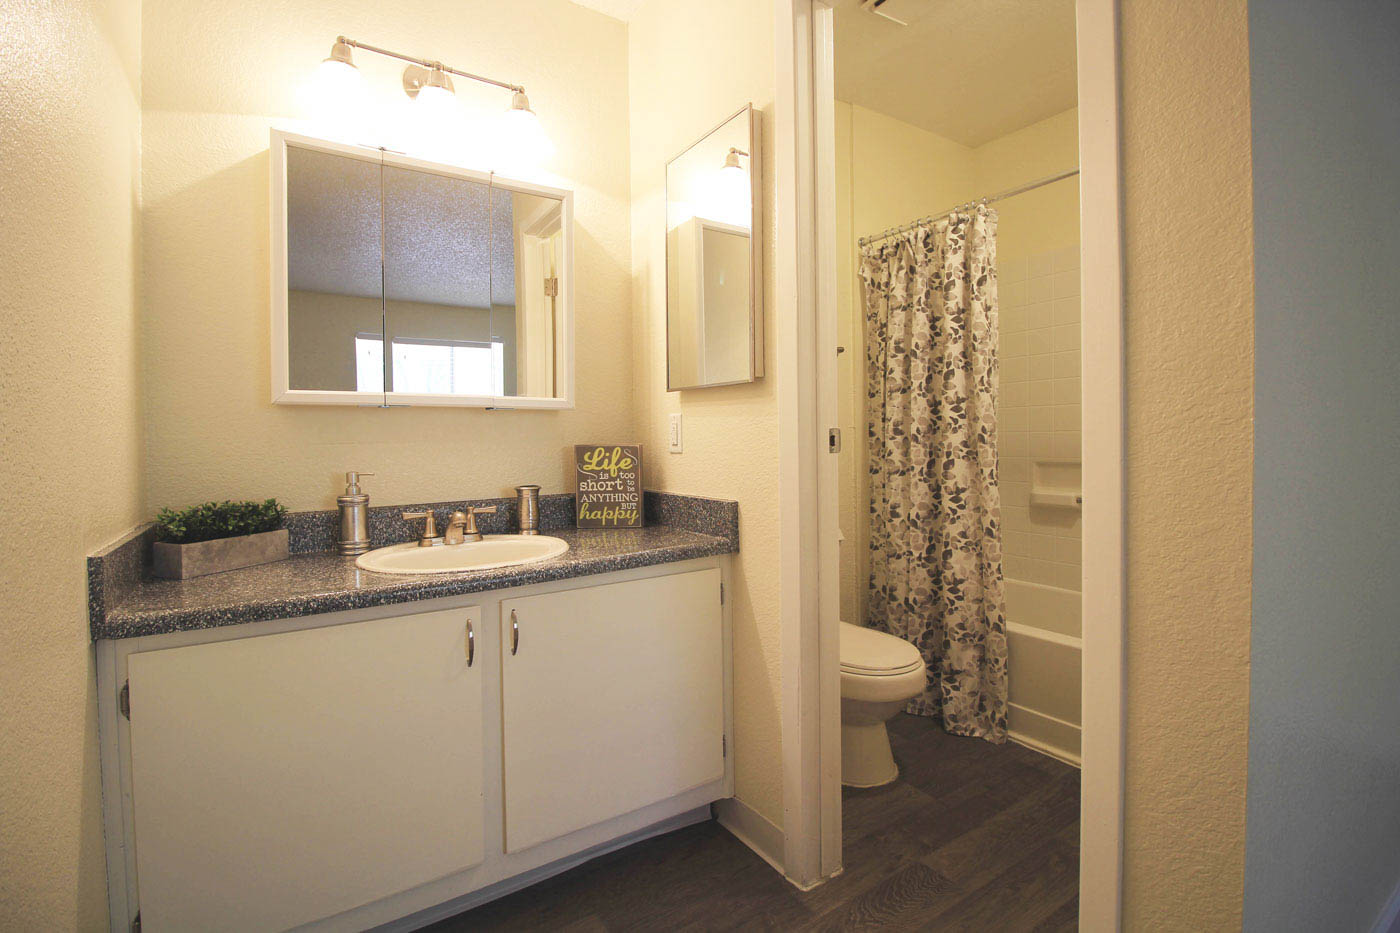 Full bathroom with shower and sink.